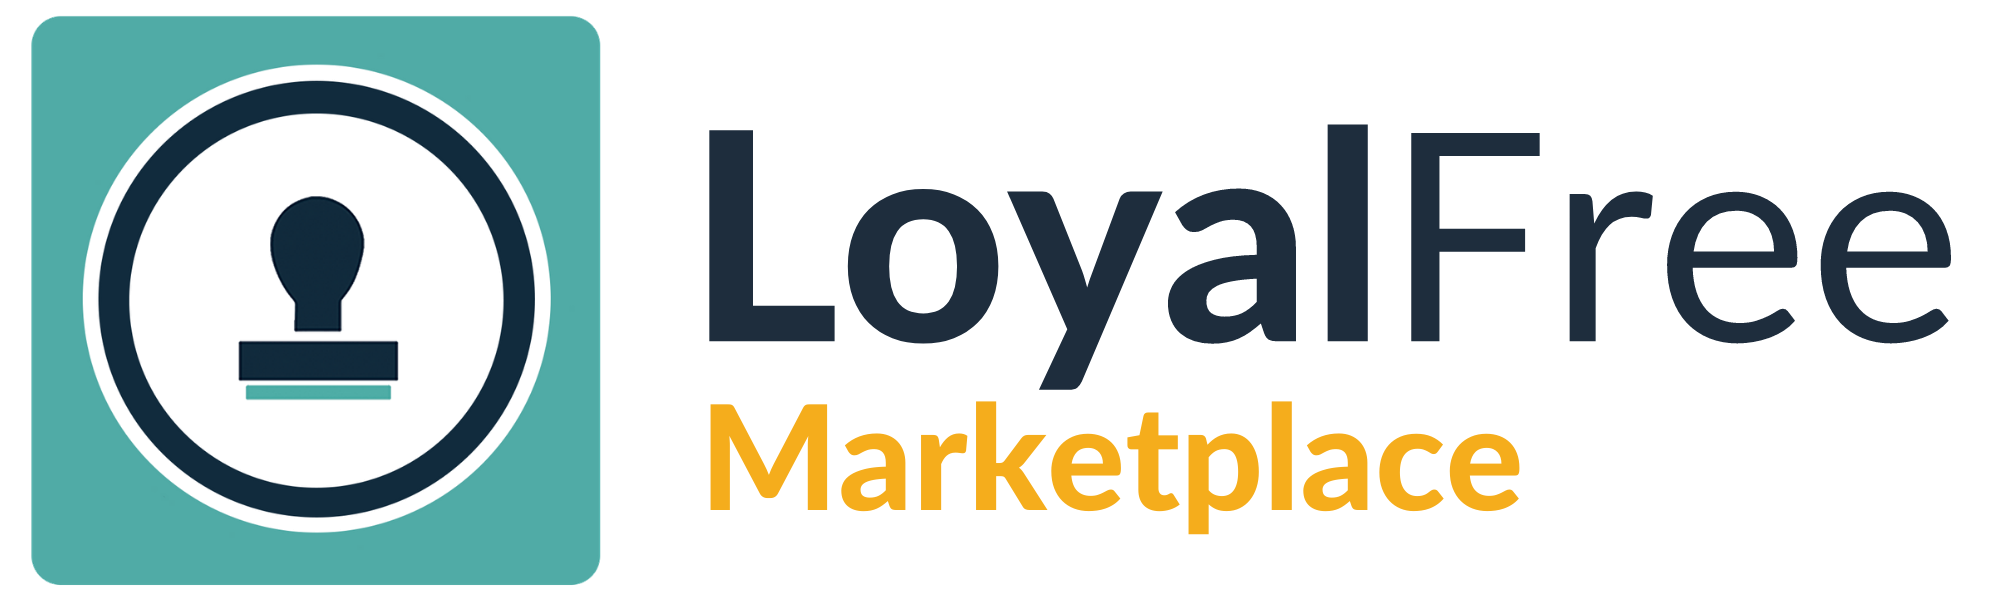 LoyalFree Marketplace